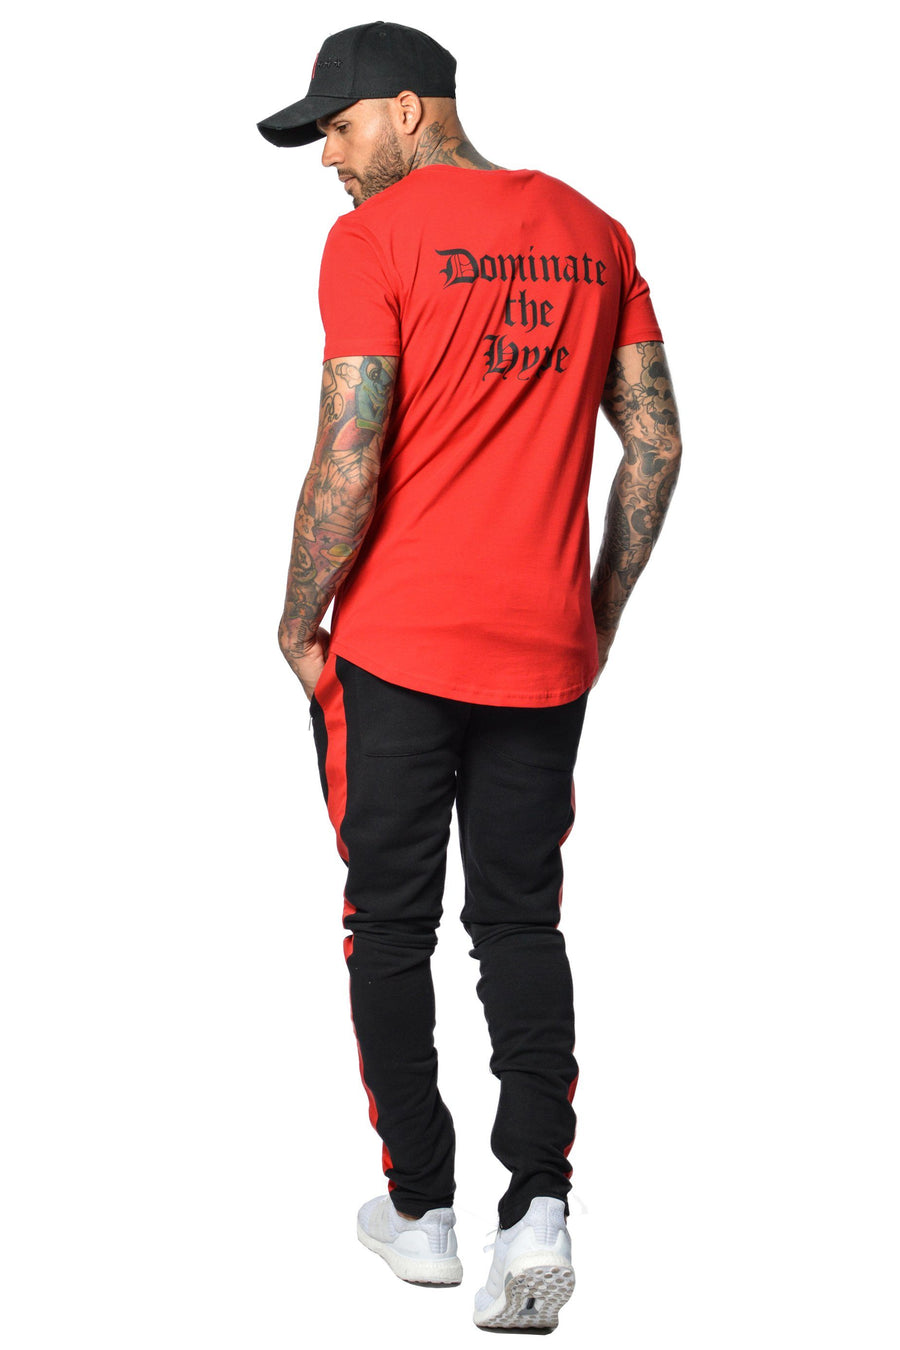 PEGADOR - Pego T-Shirt Red - PEGADOR - Dominate the Hype